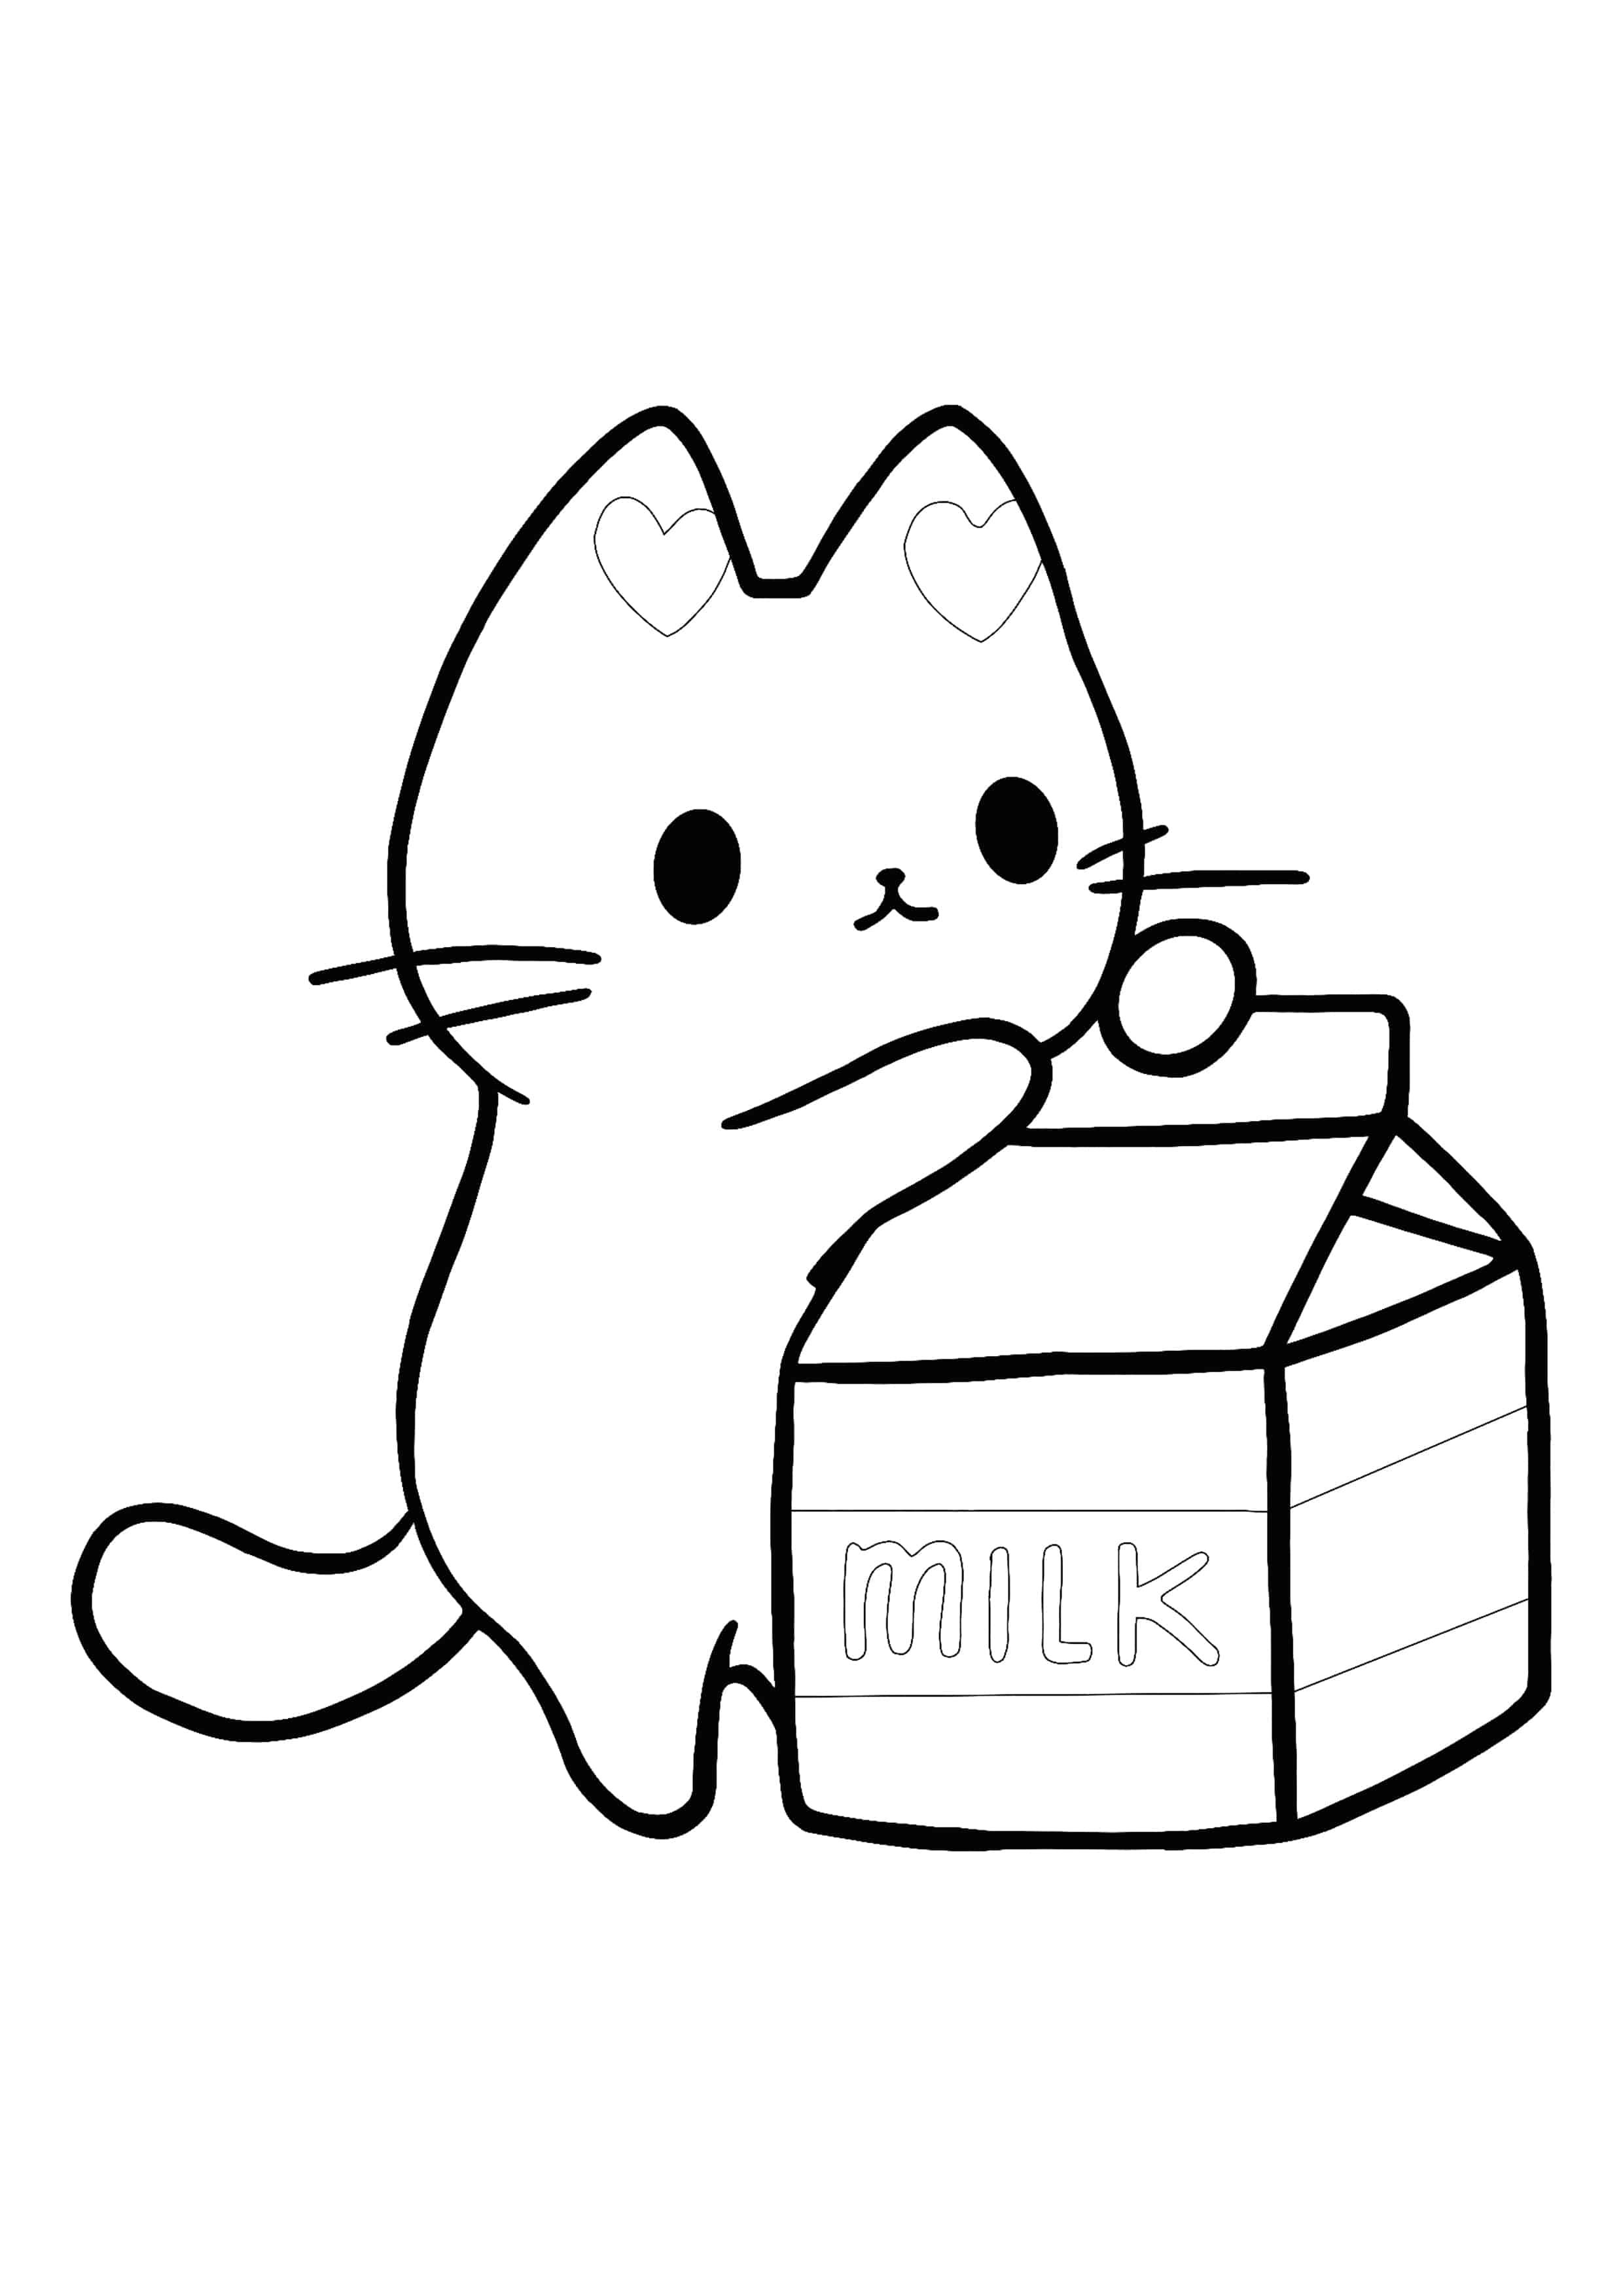 Kawaii Animals Coloring Pages : kawaii, animals, coloring, pages, Kawaii, Kitten, Coloring, Page,, Kitty, Coloring,, Puppy, Pages